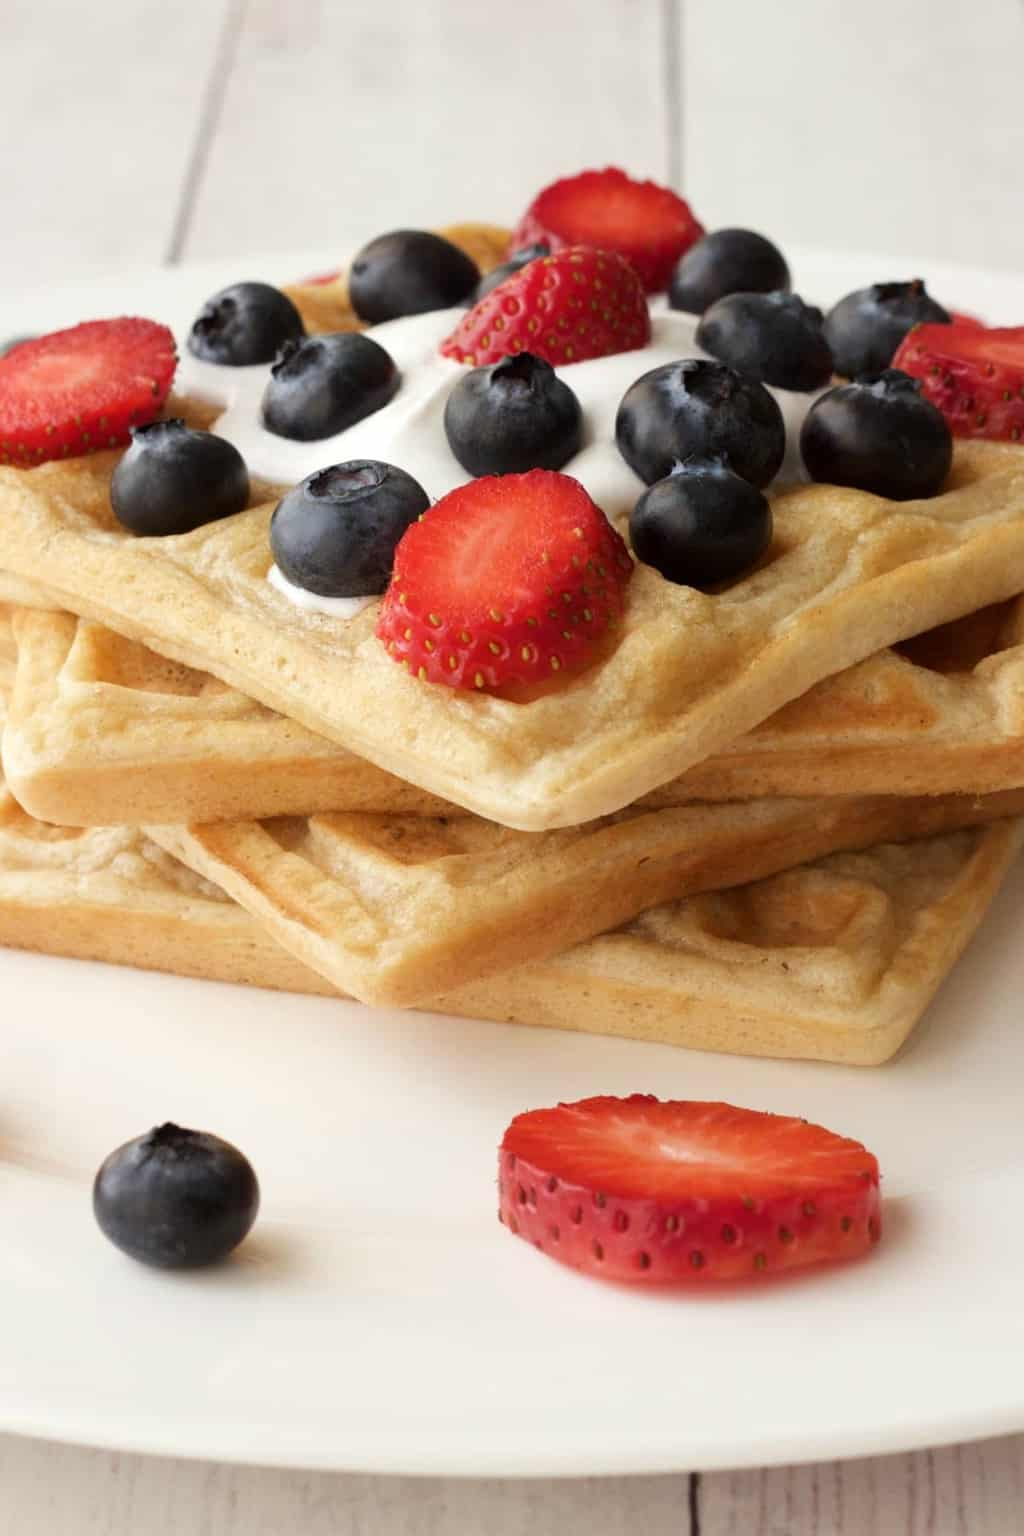 Classic Vegan Waffles Recipe. Perfect for breakfast served with vegan whipped cream, fresh fruit and syrup. #vegan #lovingitvegan #breakfast #waffles